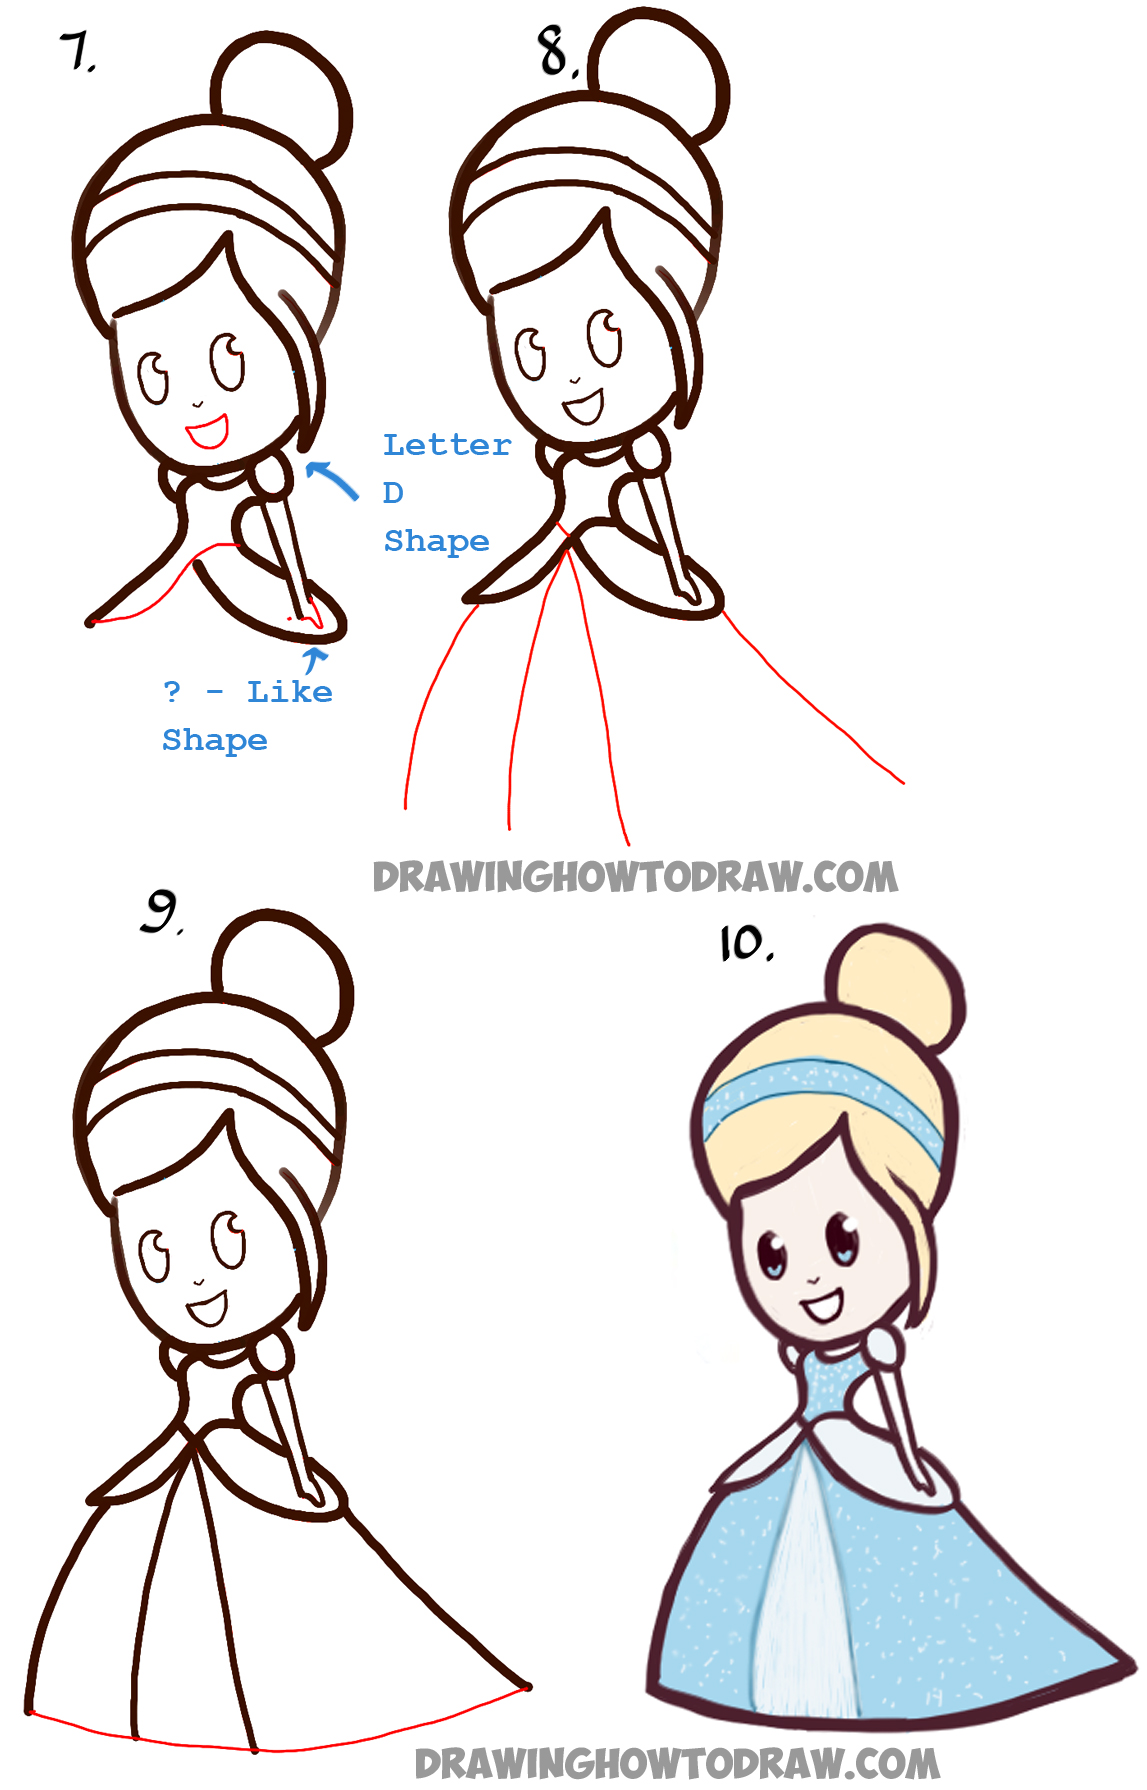 How to Draw Cute Baby Chibi Cinderella - Easy Step by Step Drawing Tutorial